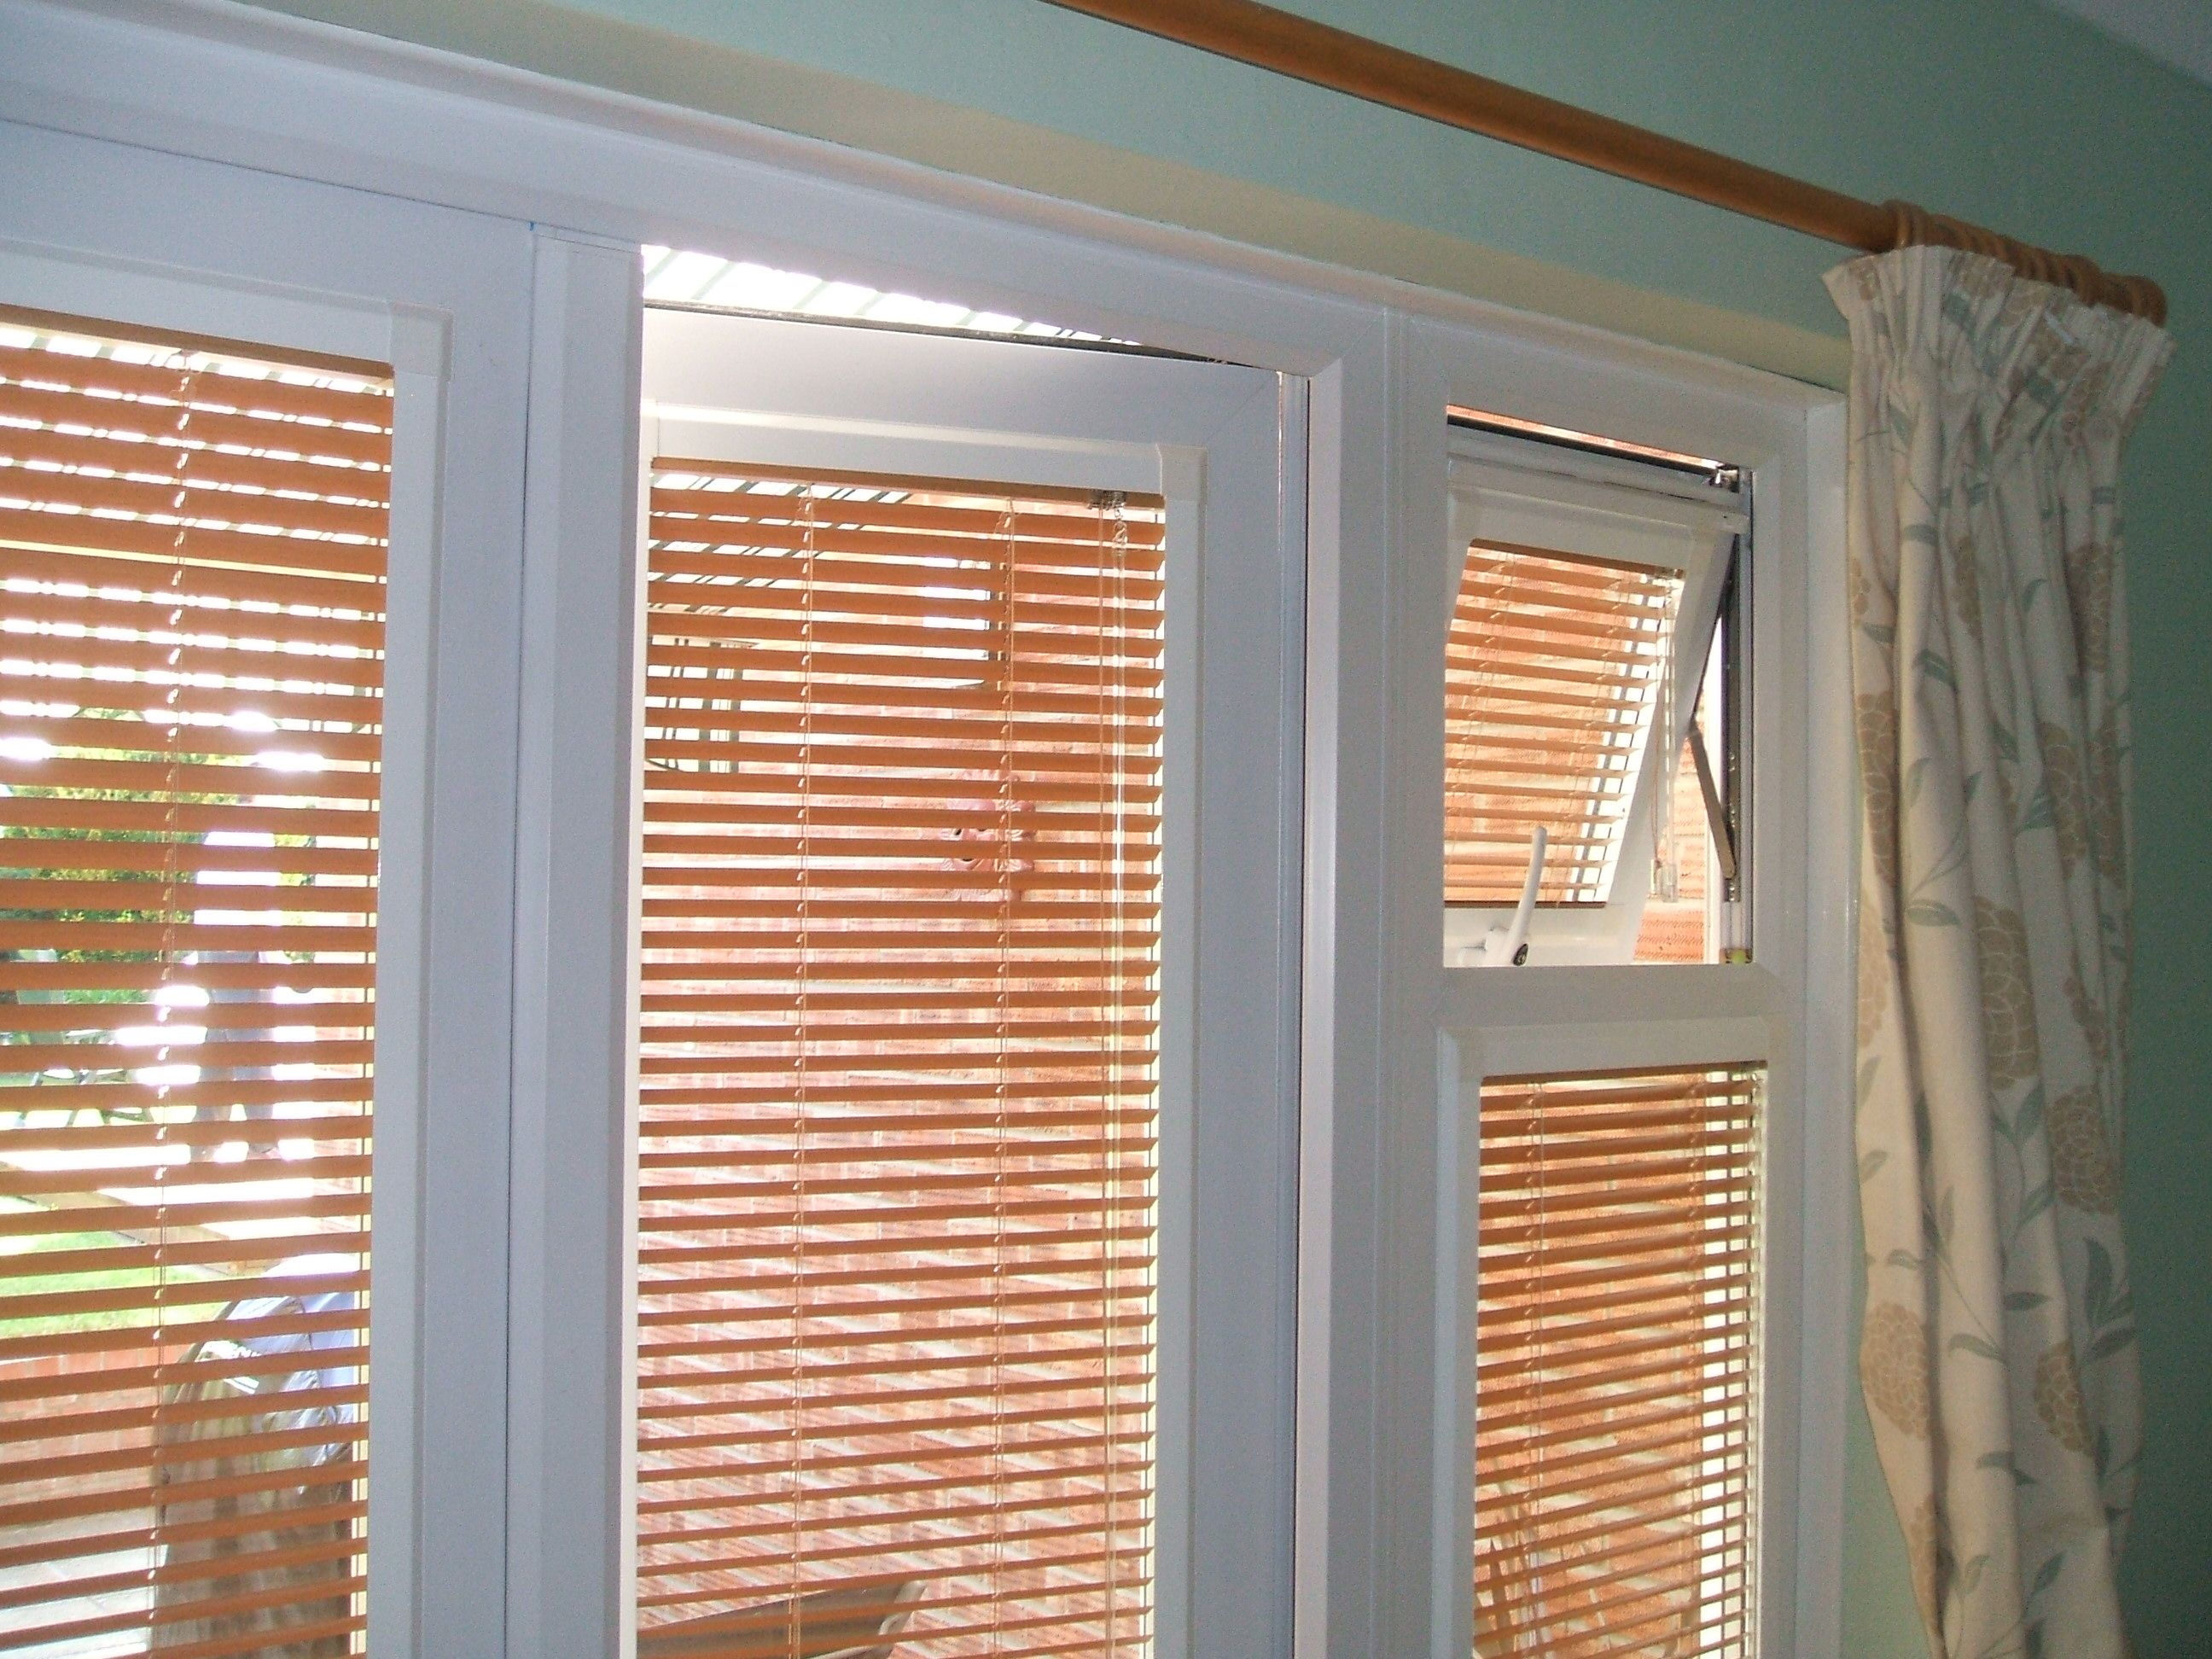 Perfect fit blinds provide privacy and dimout a